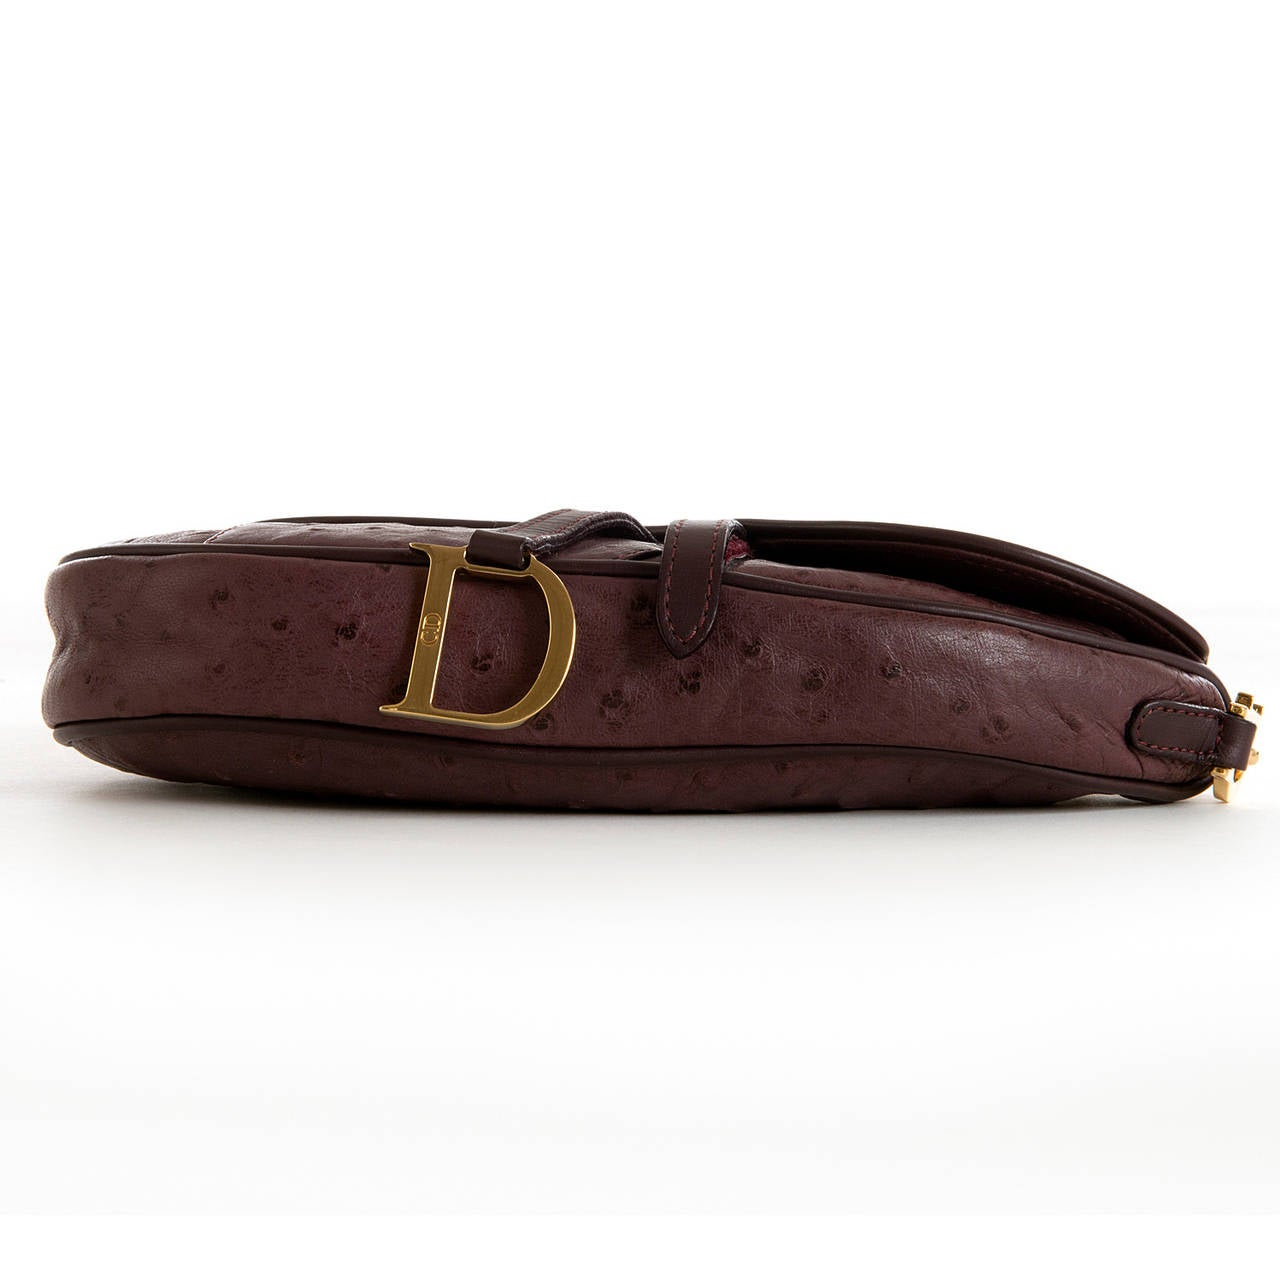 WOW ! Christian Dior Aubergine 'Saddle' Bag in Ostrich with Gold Logo Hardware 6